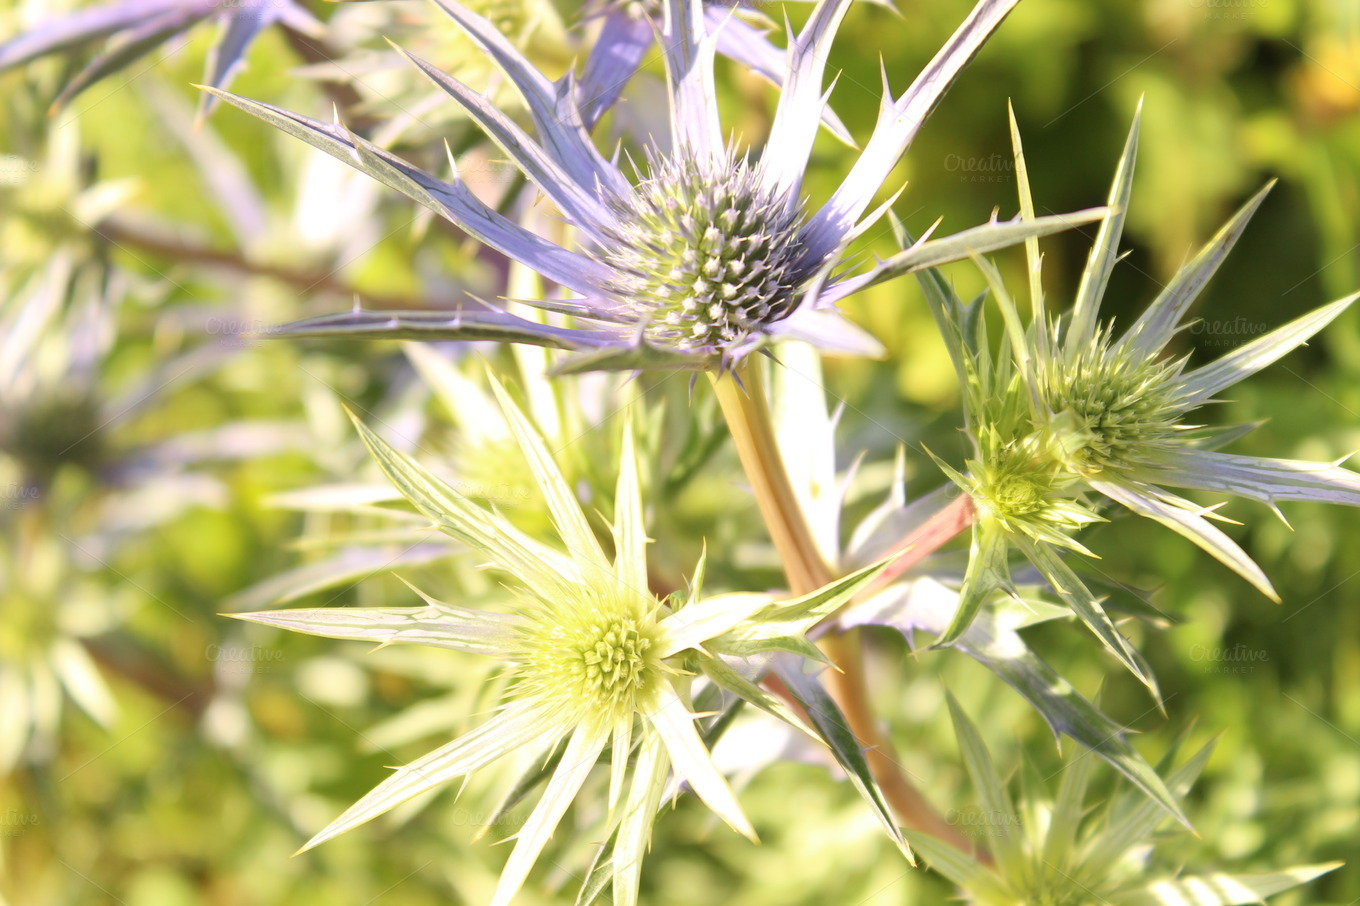 Sea Holly Flower Background Nature s on Creative Market